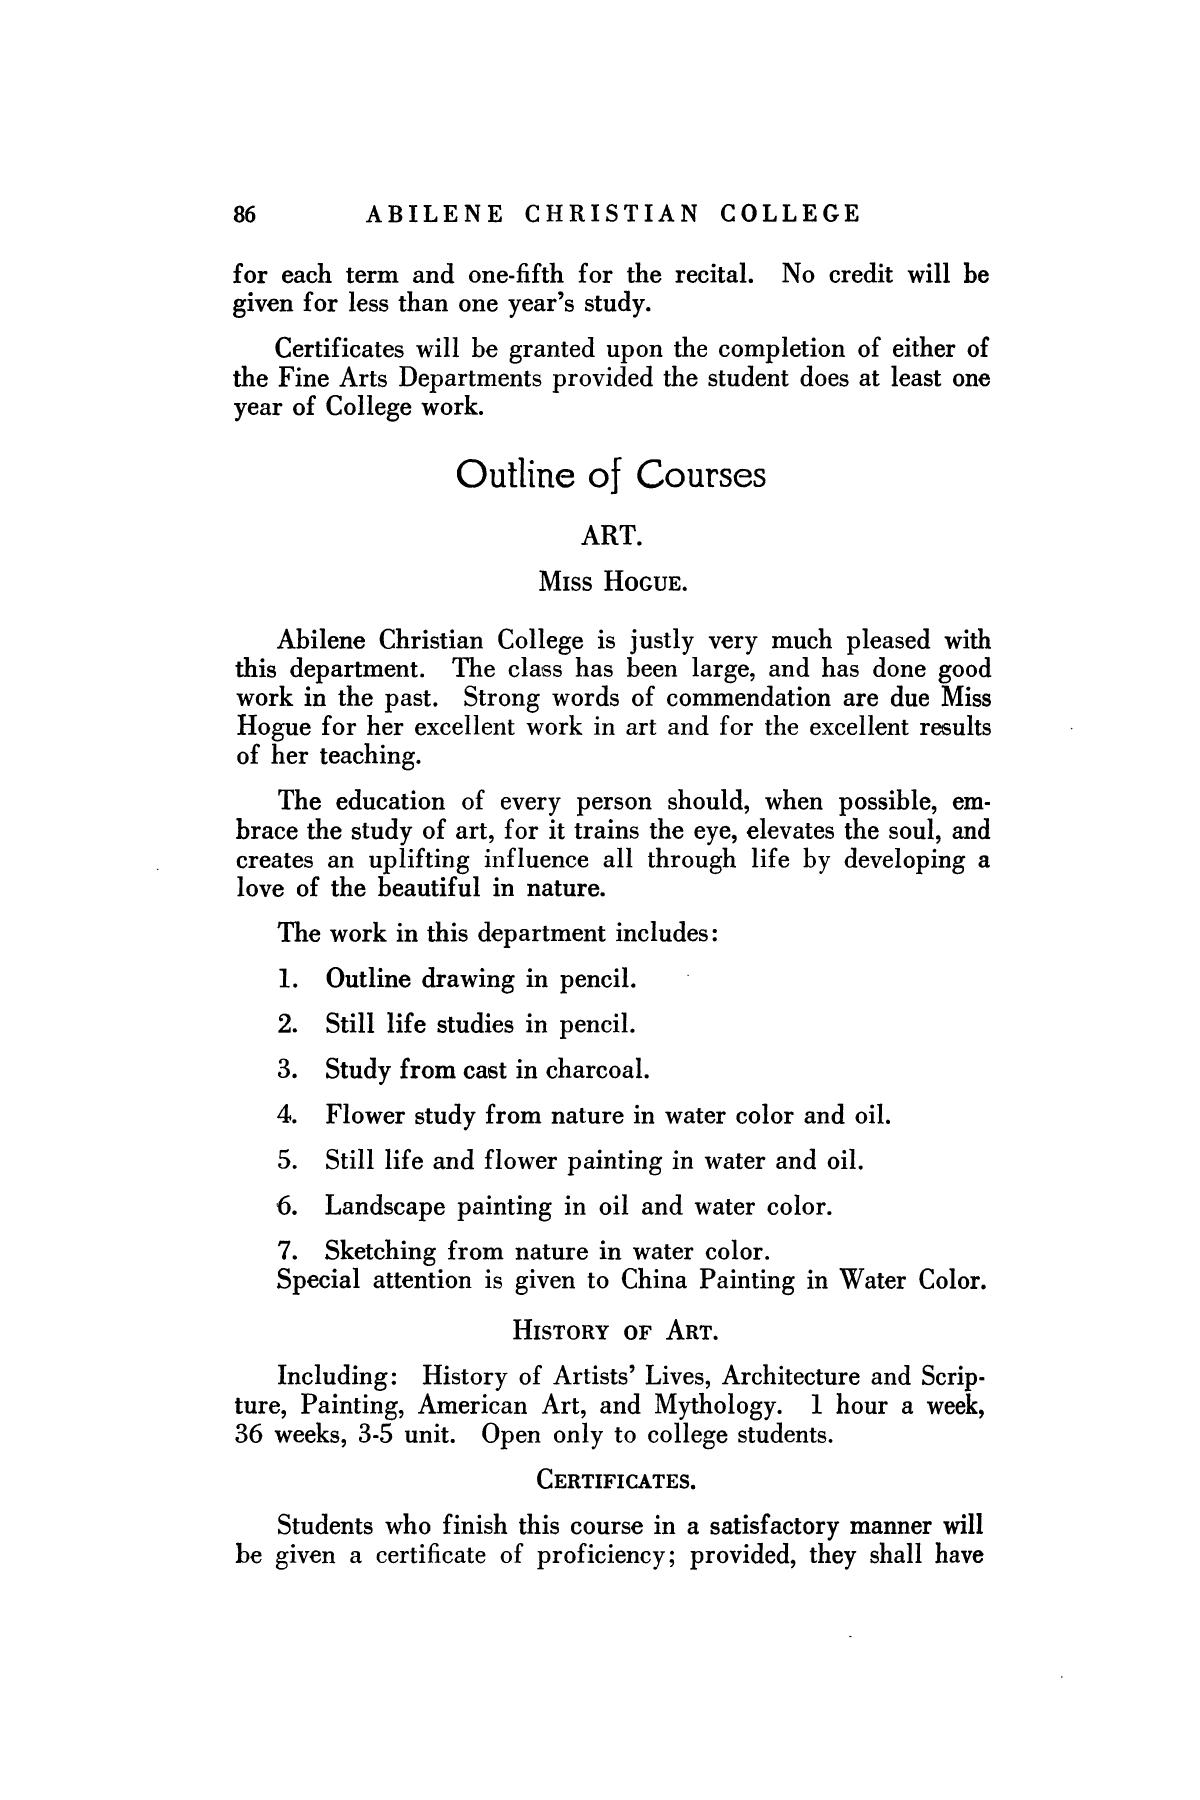 Catalog of Abilene Christian College, 1925-1926                                                                                                      86